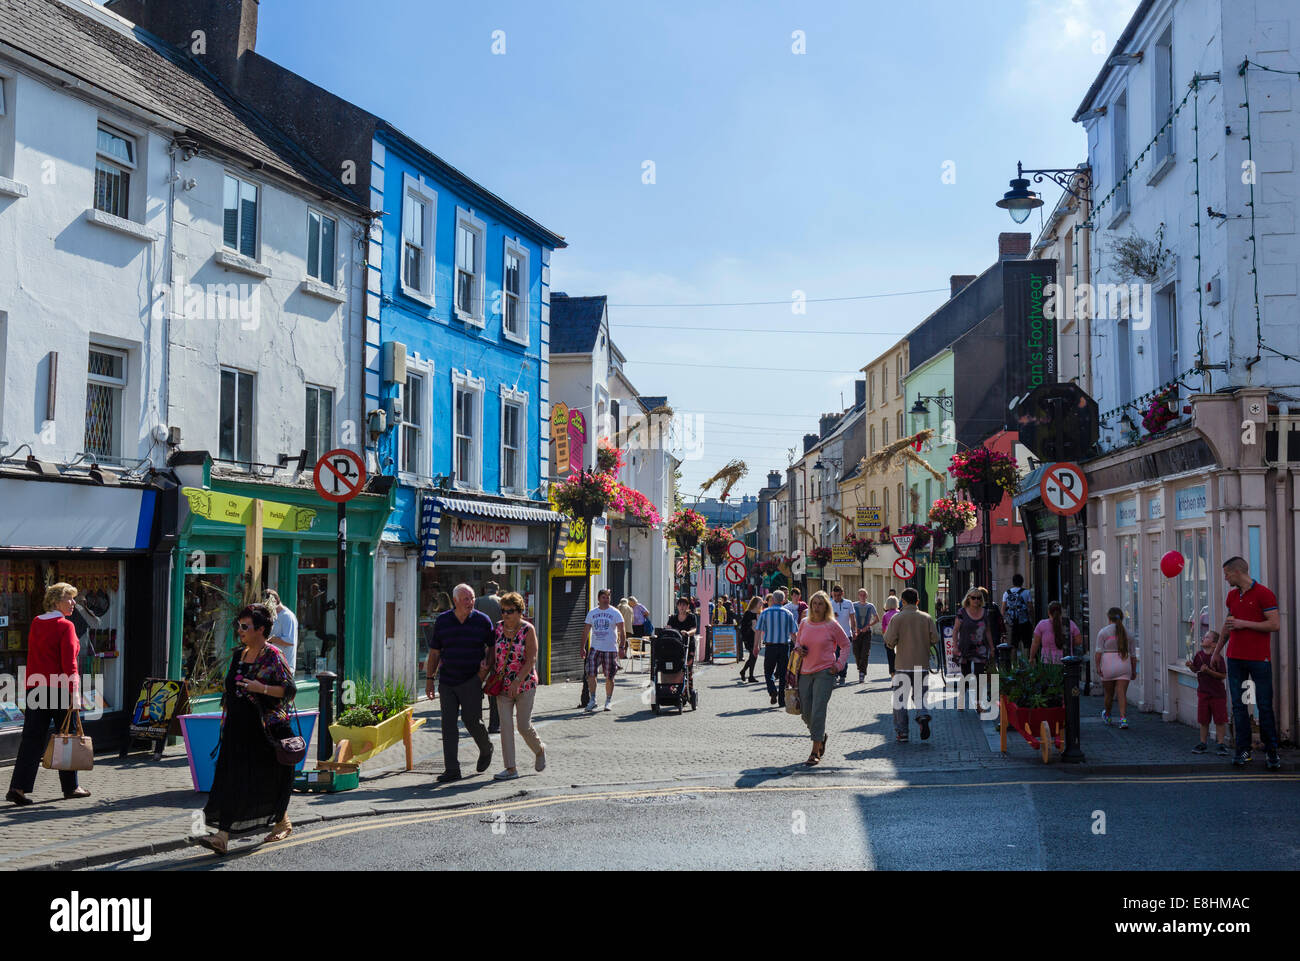 Waterford dating: find love near you | EliteSingles